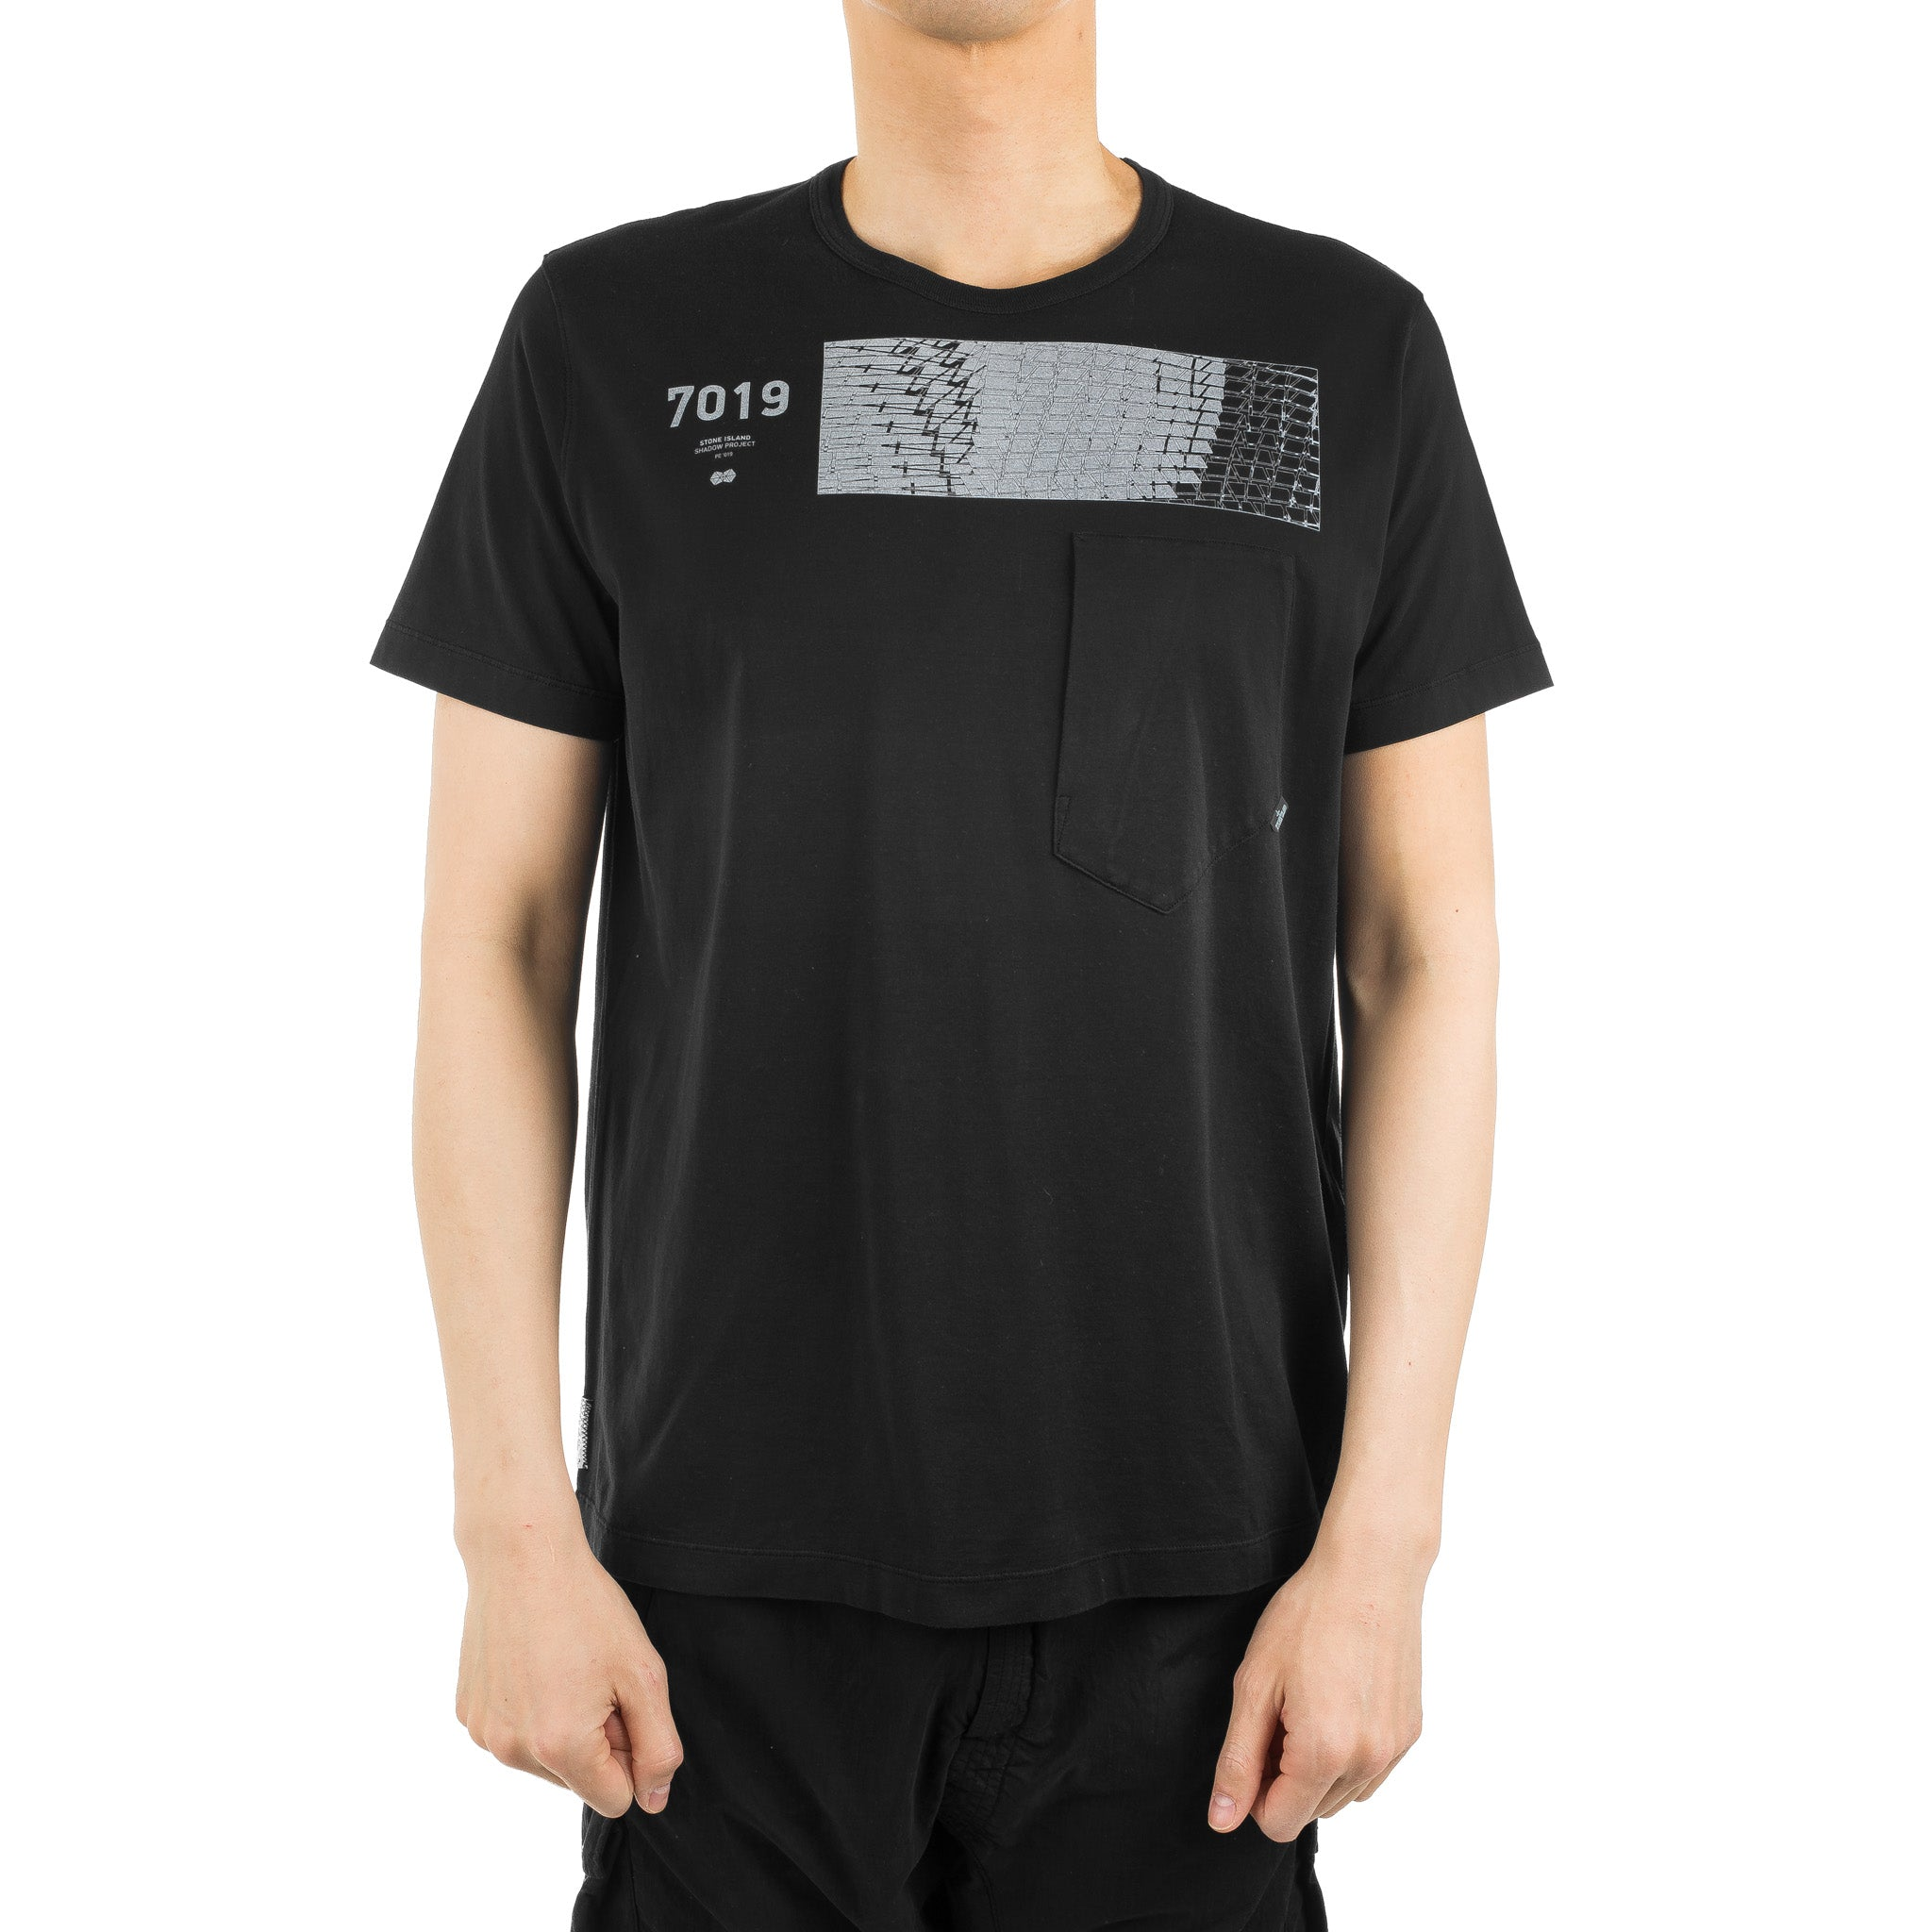 SP Short Sleeve Tee 701920110 Black